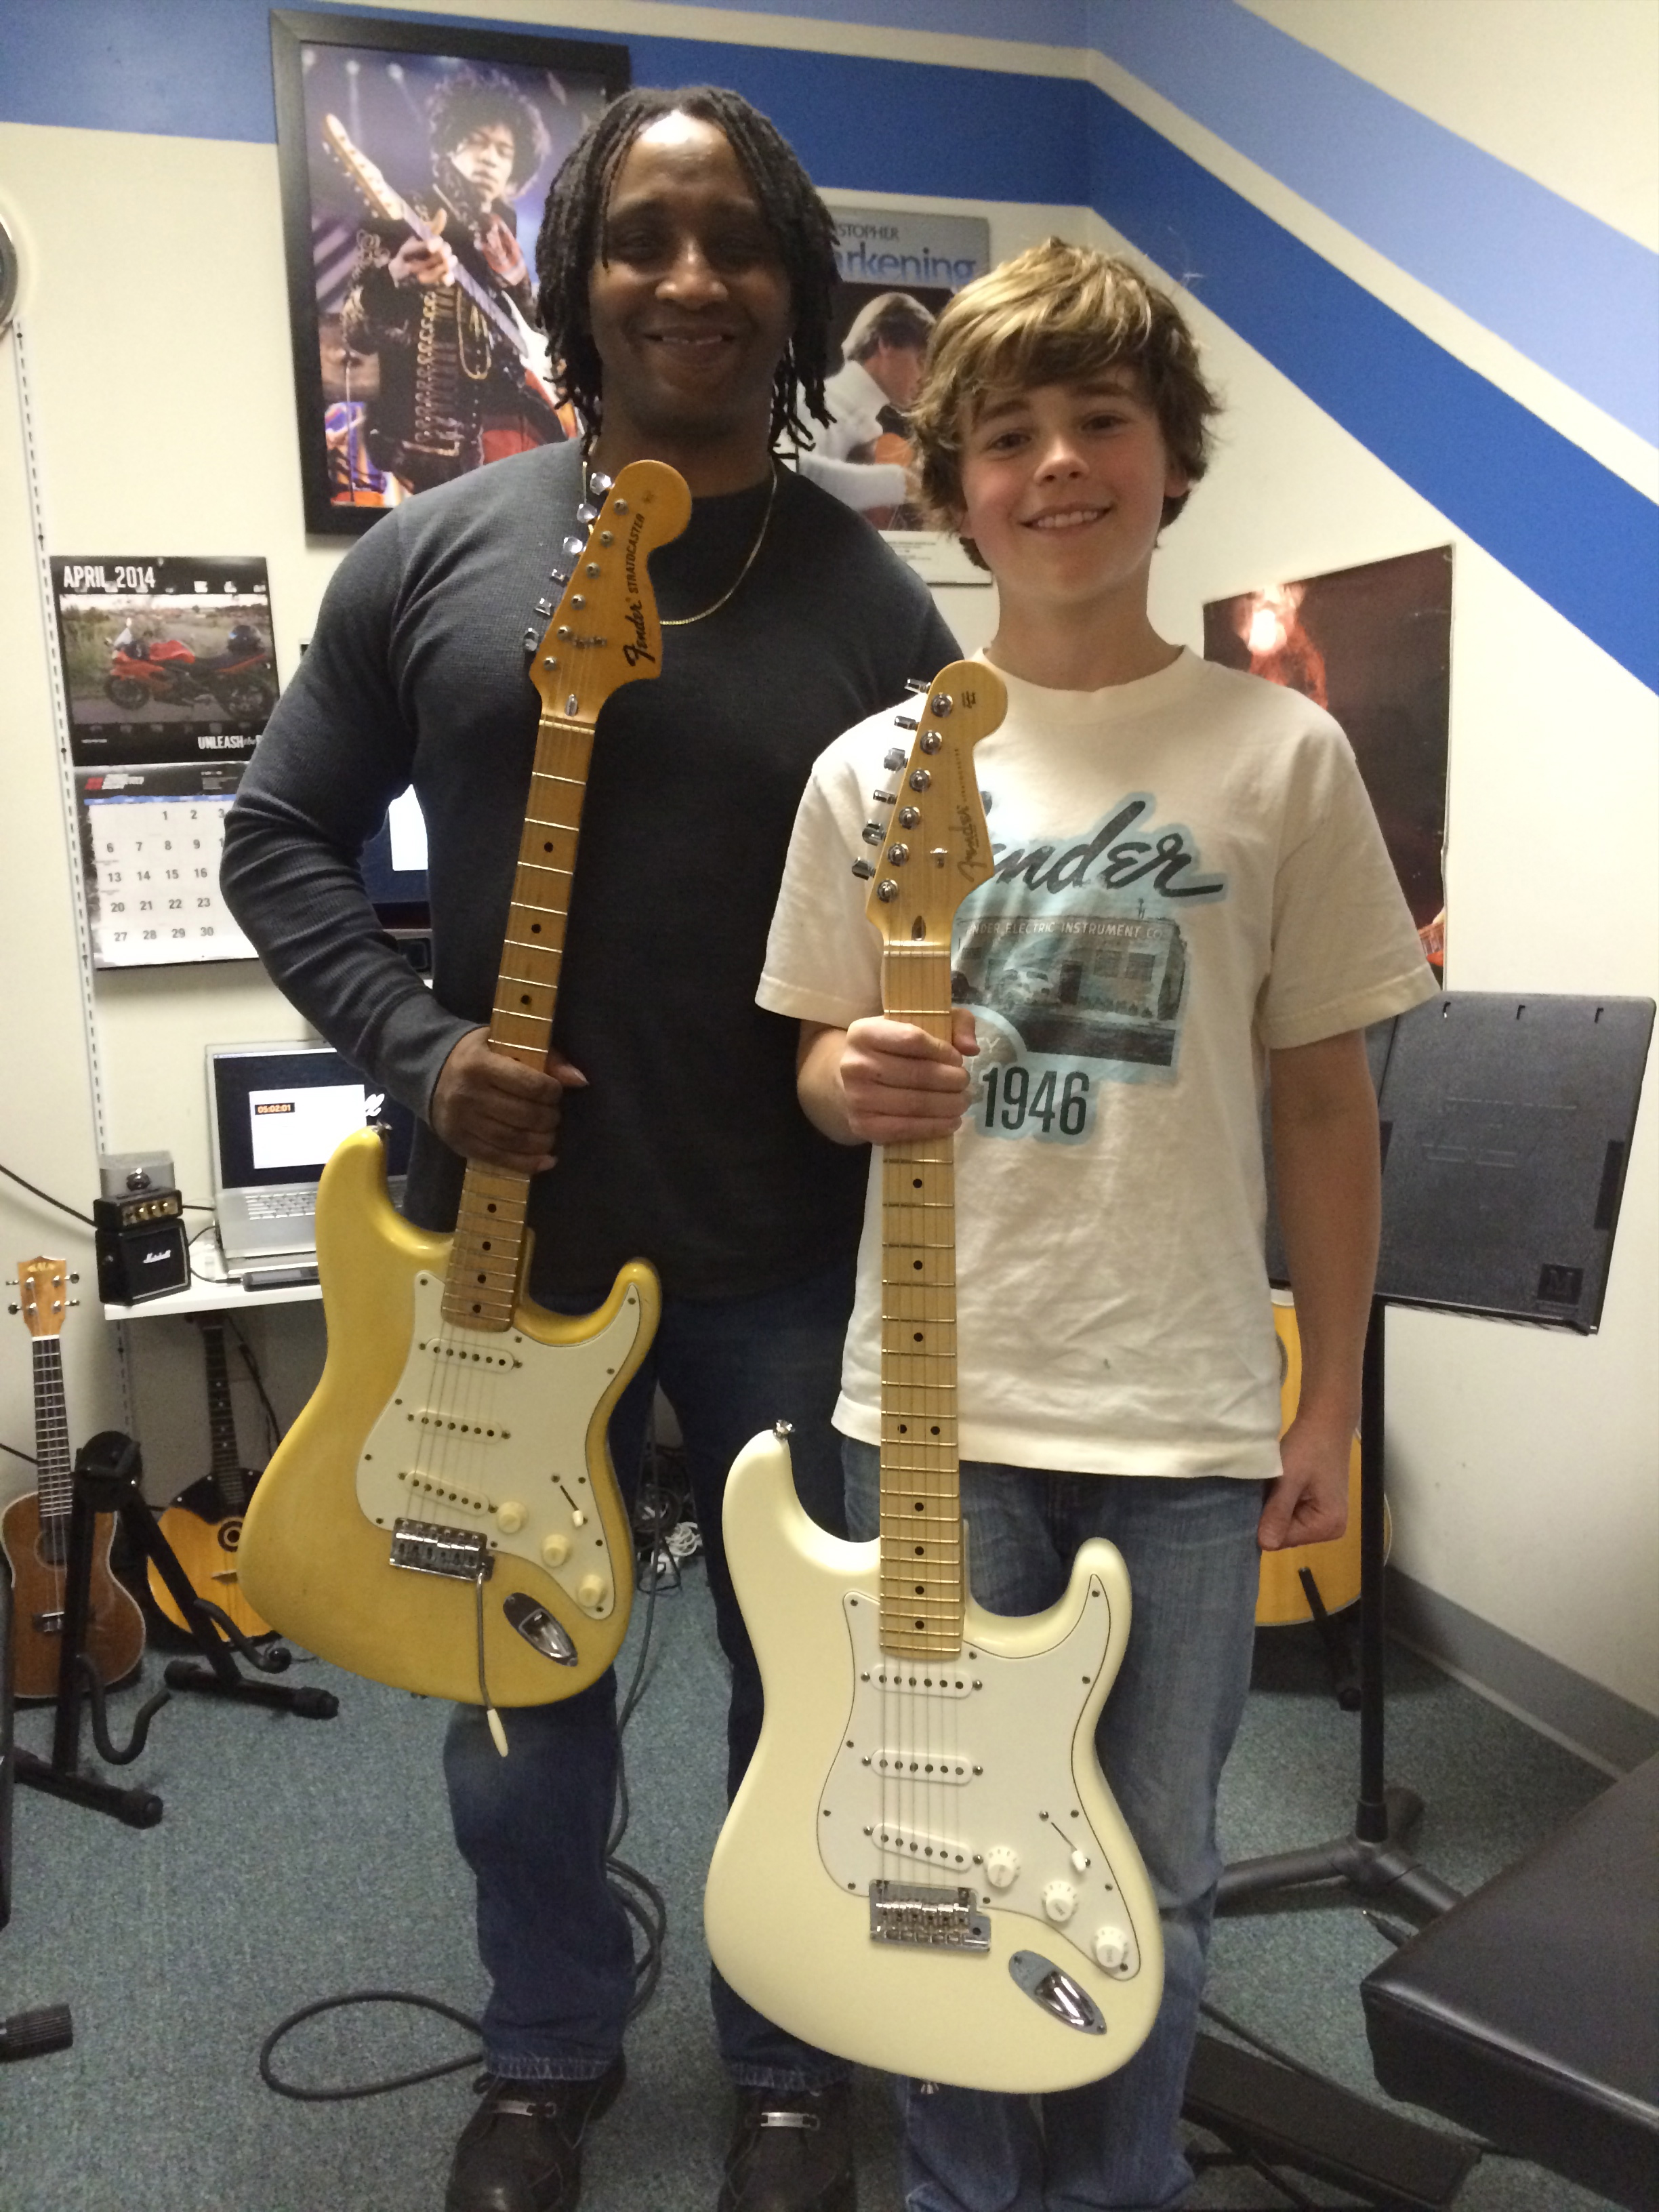 Leon-Christian-Guitar-Lessons-Electric-Federal-Way-Seattle-Tacoma-WA